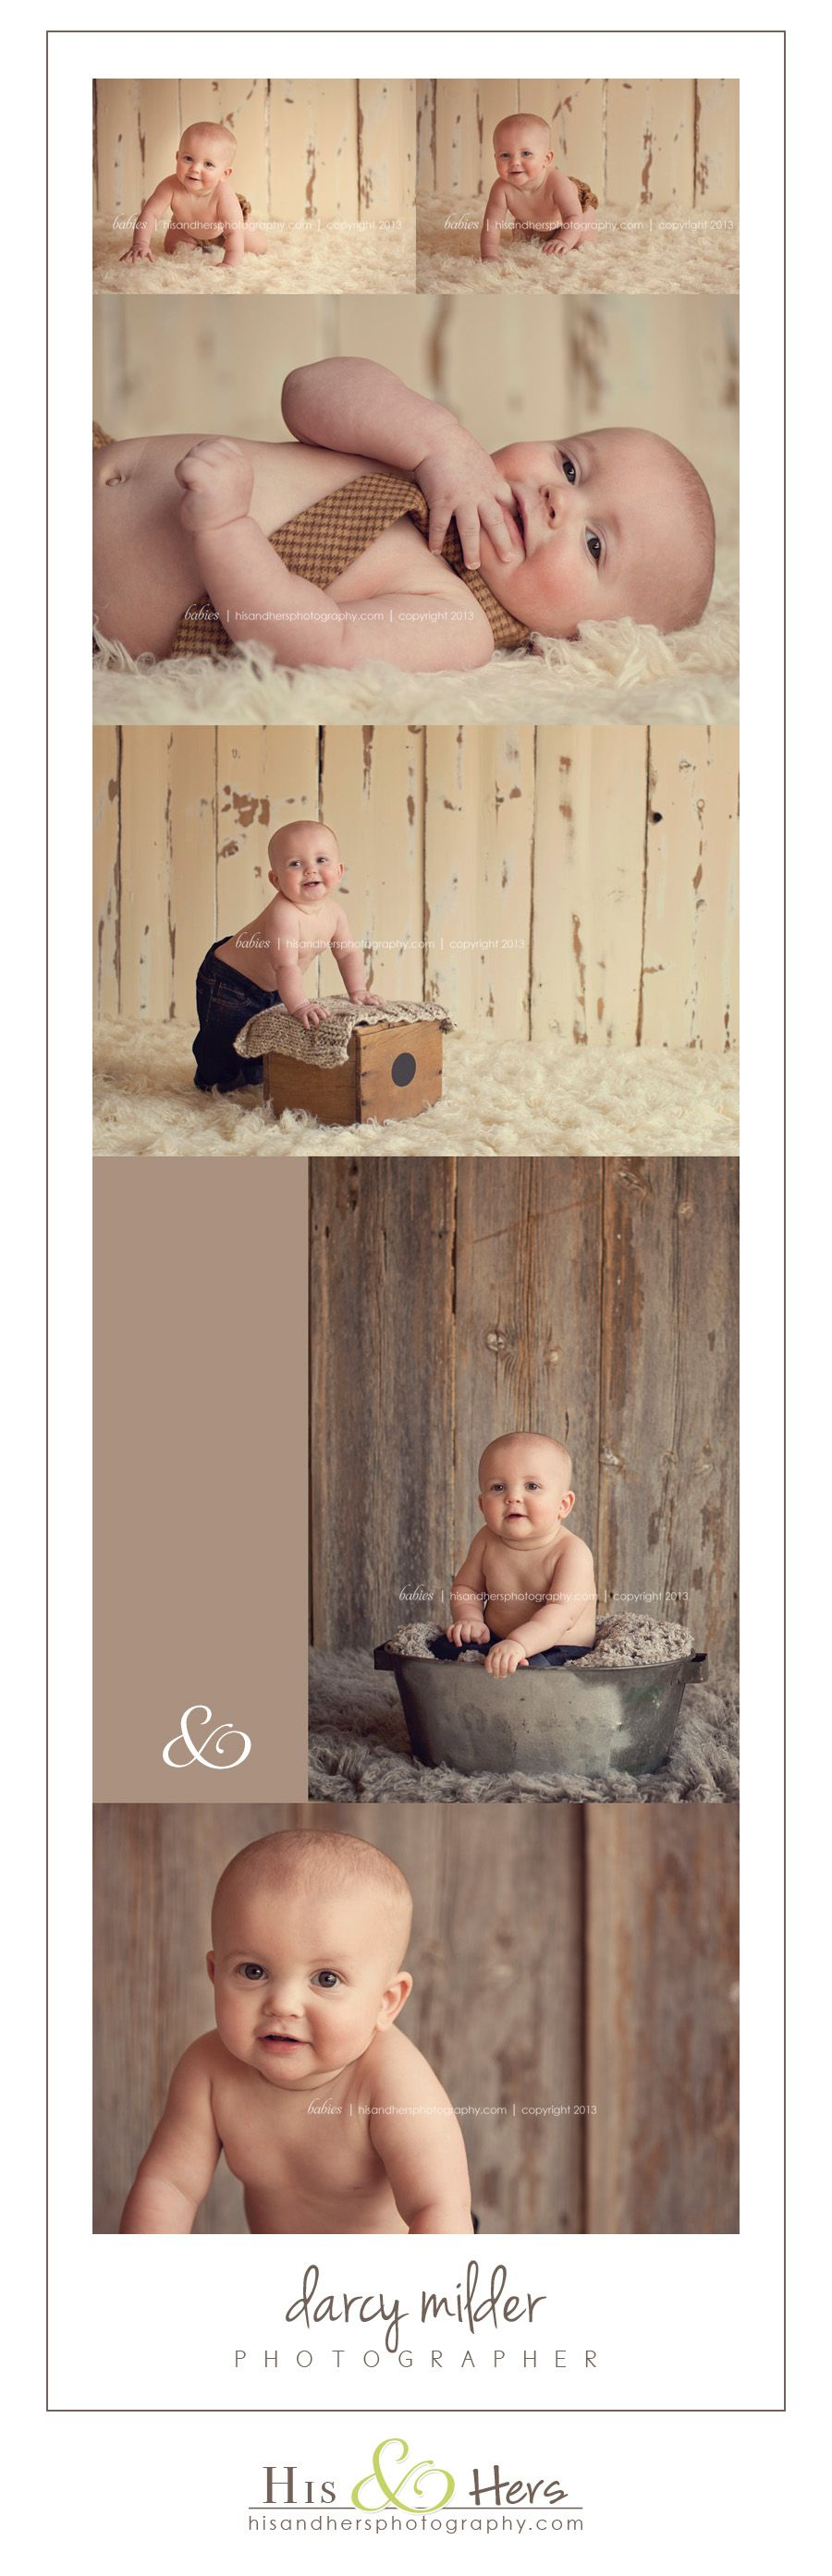 iowa baby photographer children's photographer des moines iowa his & hers